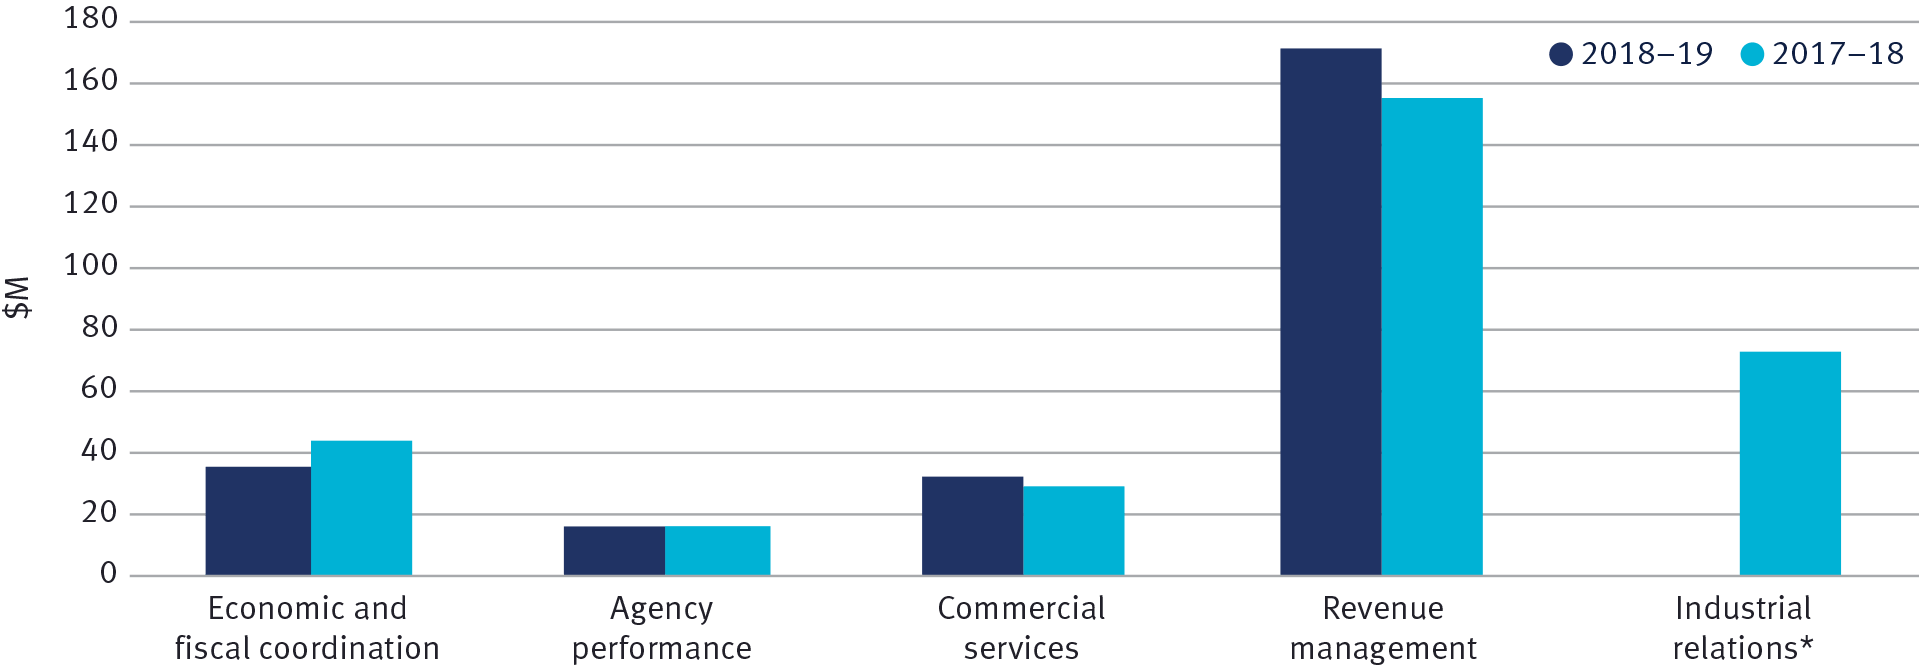 Total expenses by service 2018–19